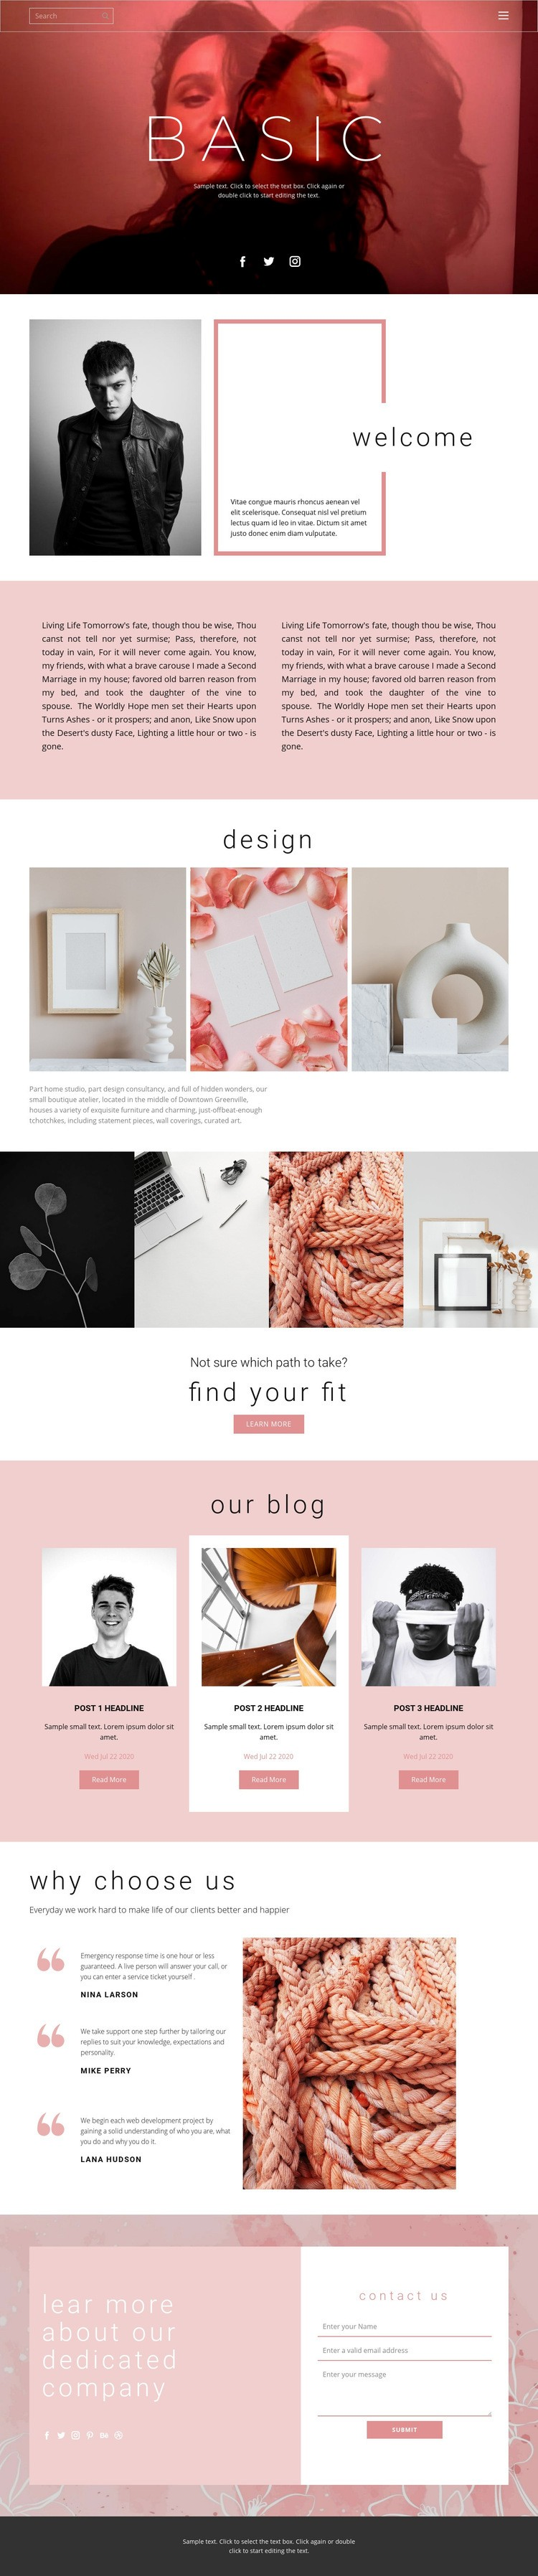 Fashion trends this year Html Code Example